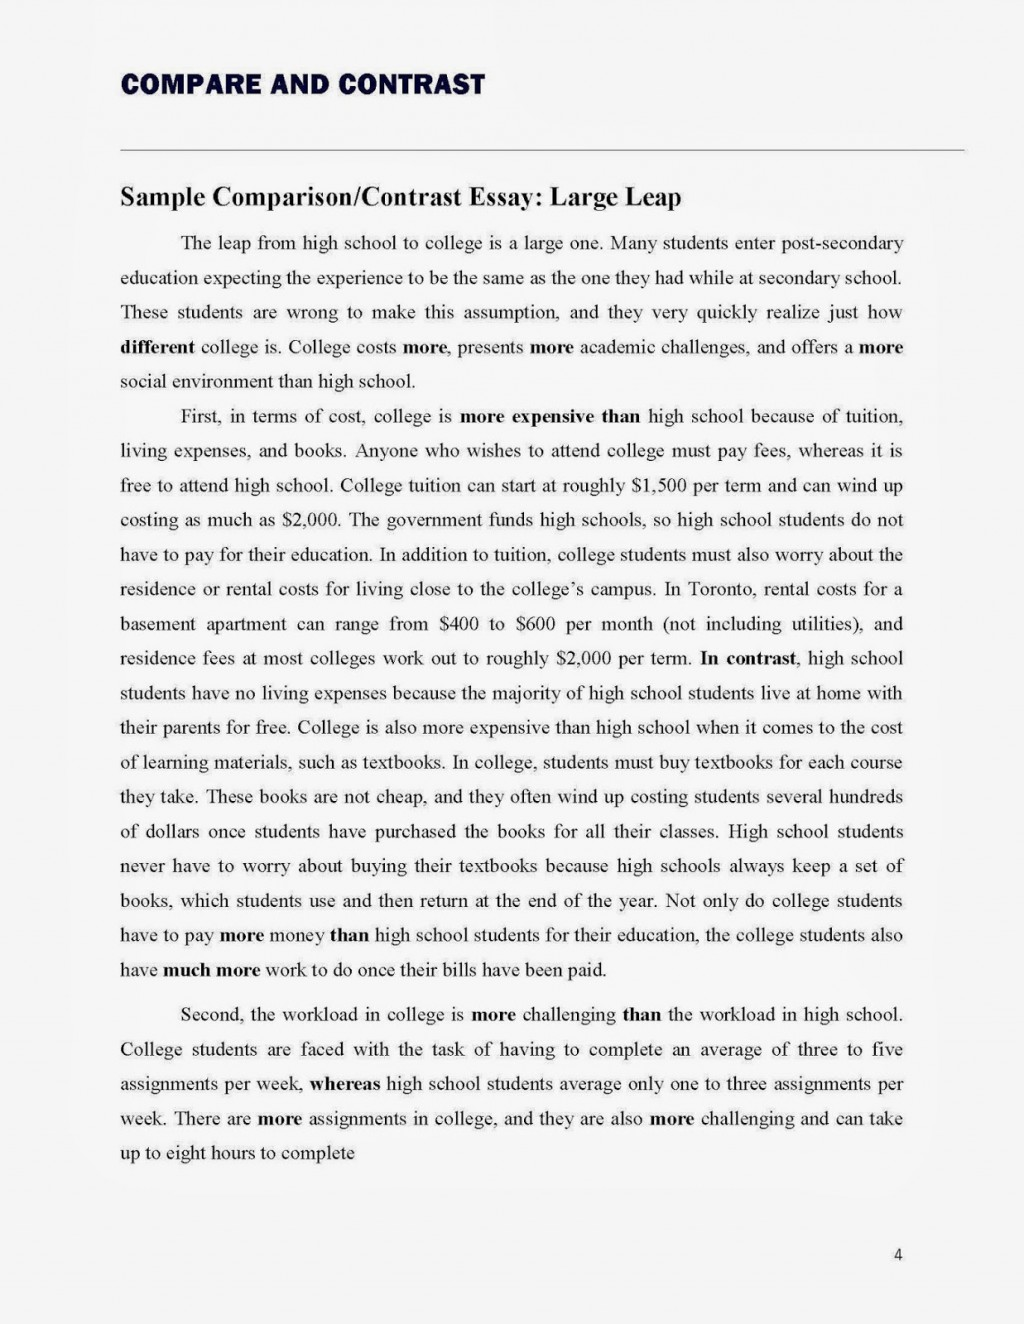 013 Compare Contrast Essay Topics Compare20and20contrast20essay Page 4 Stupendous For College Middle School Elementary Students Large